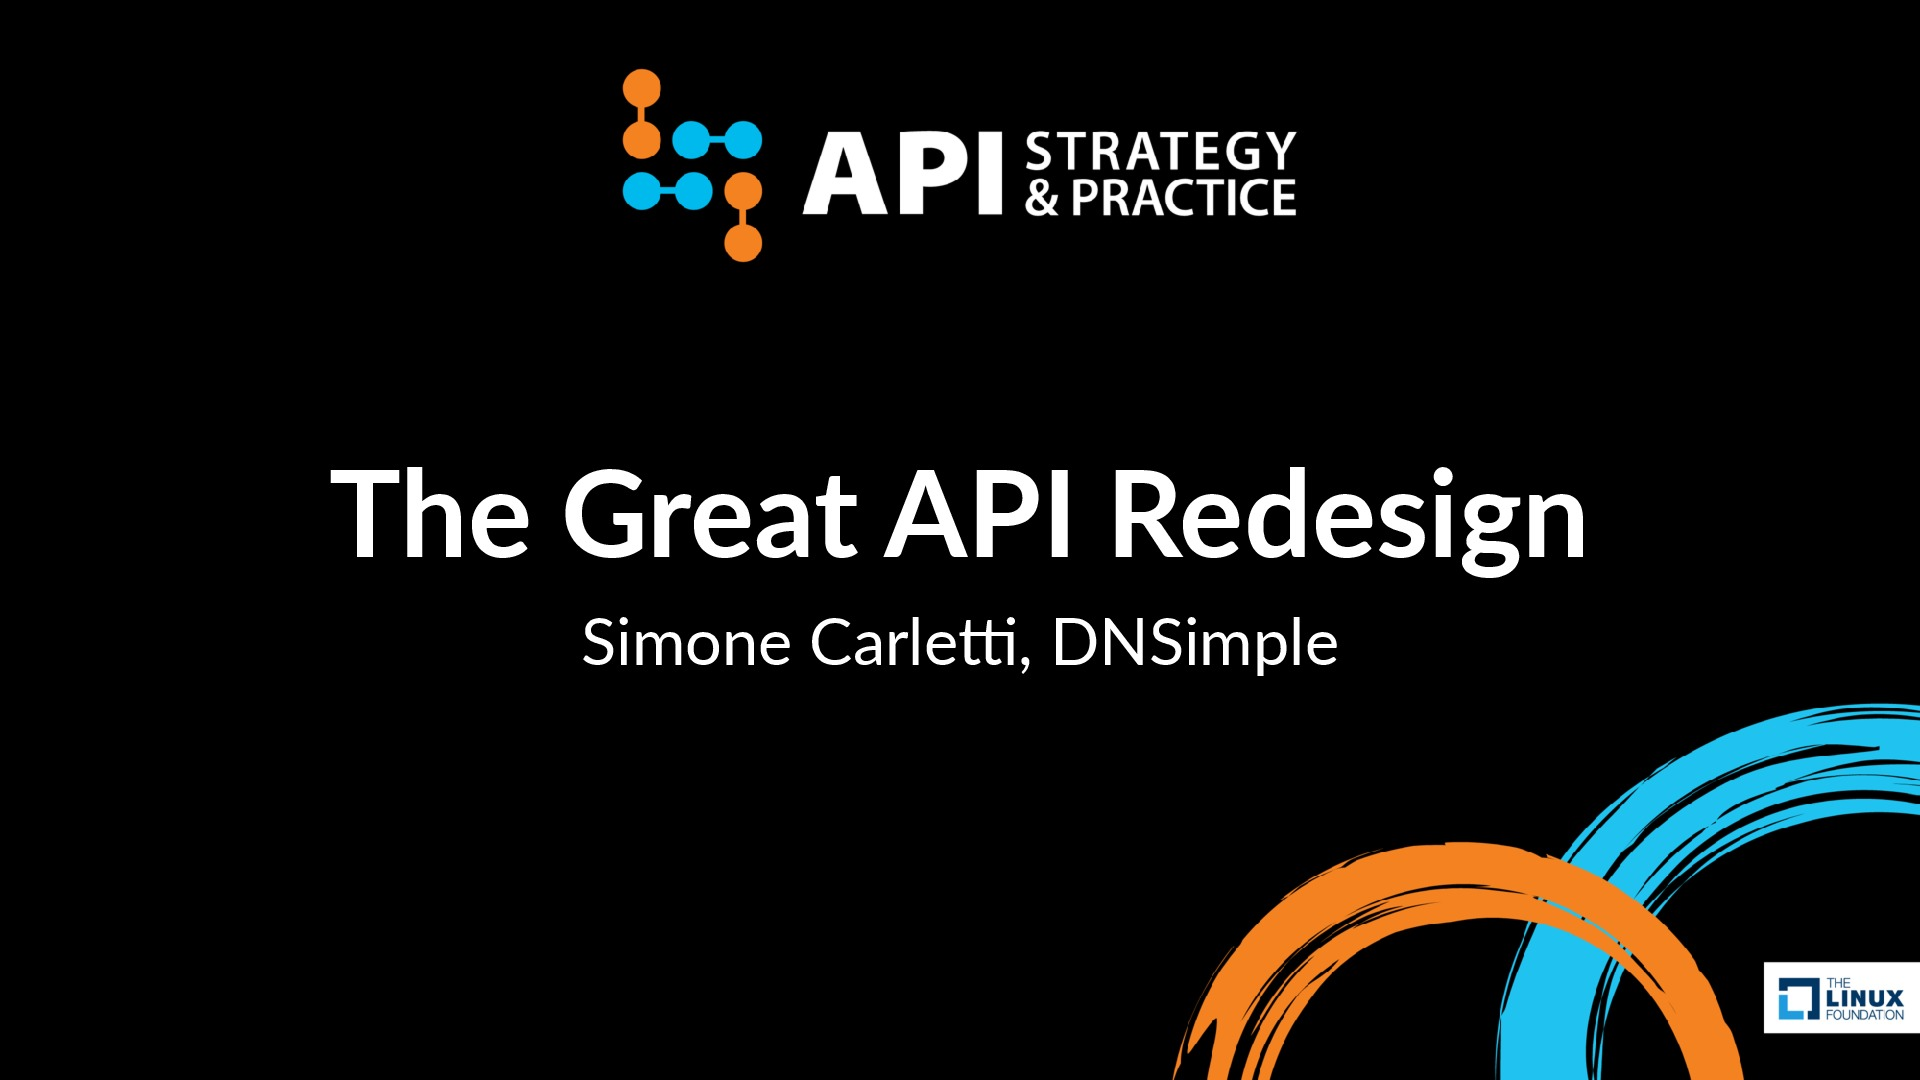 The Great API Redesign (APIStrat 2017)